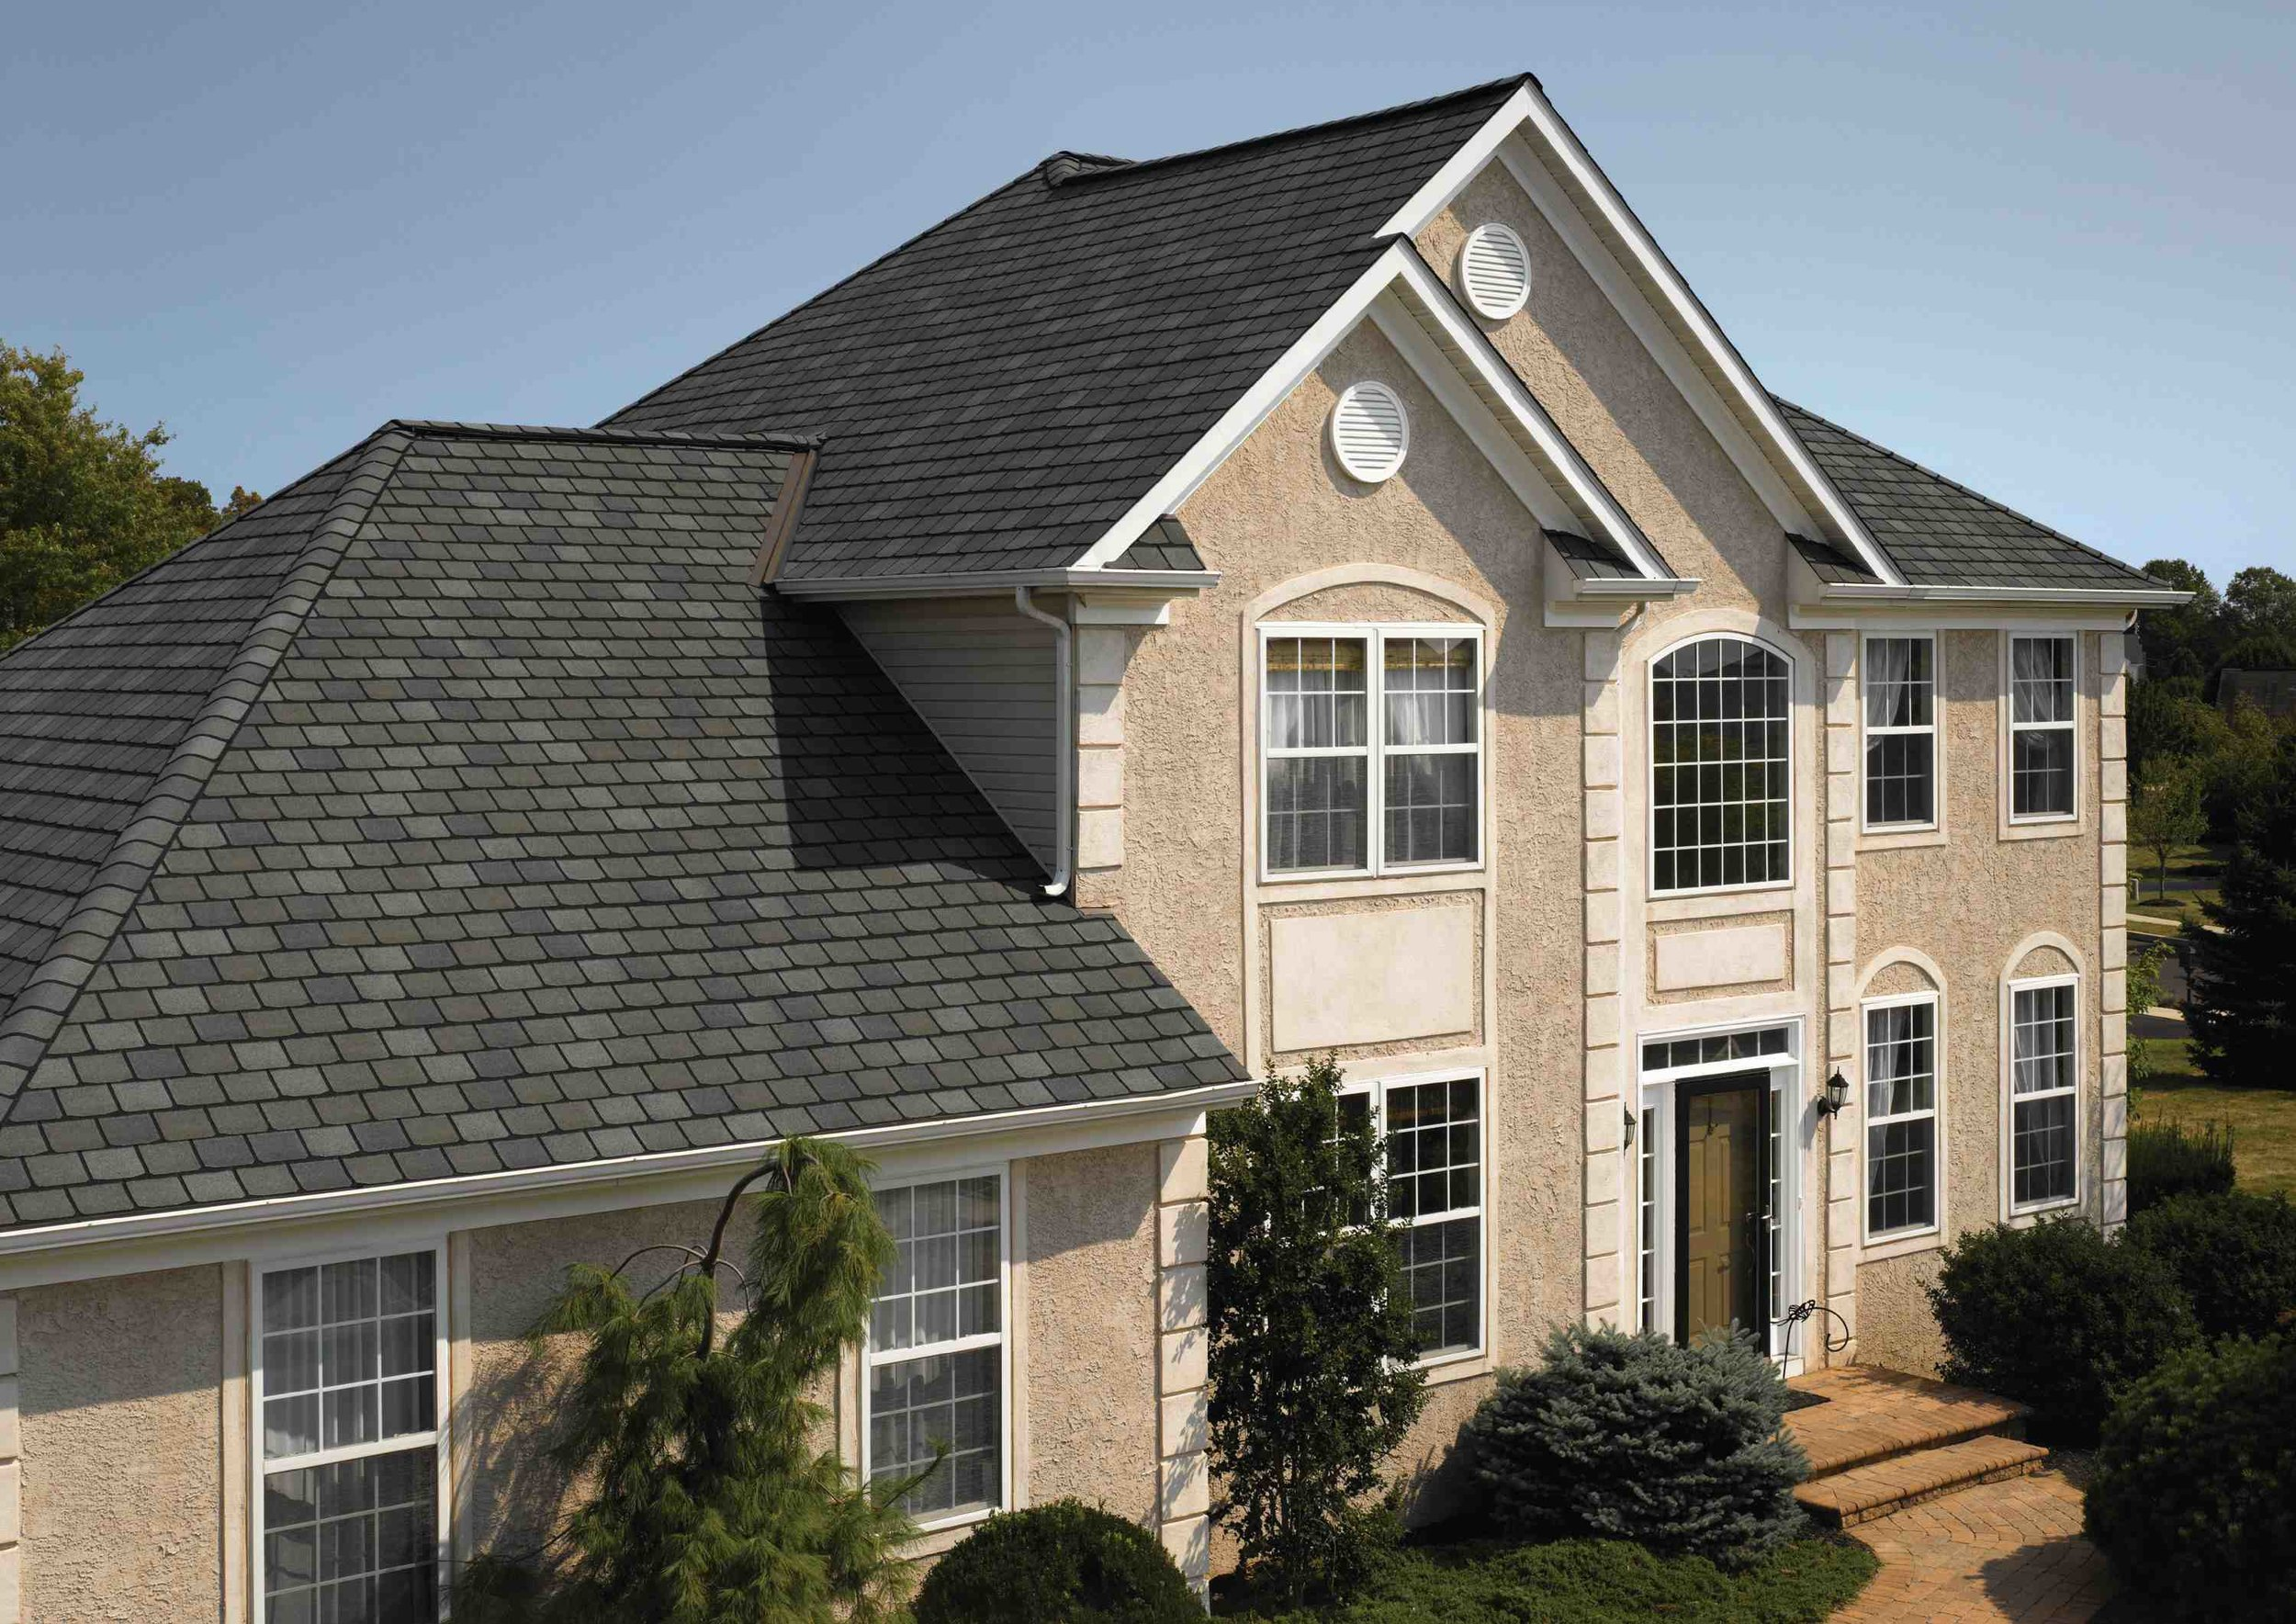 roofing-shingles-for-sale-3.jpeg